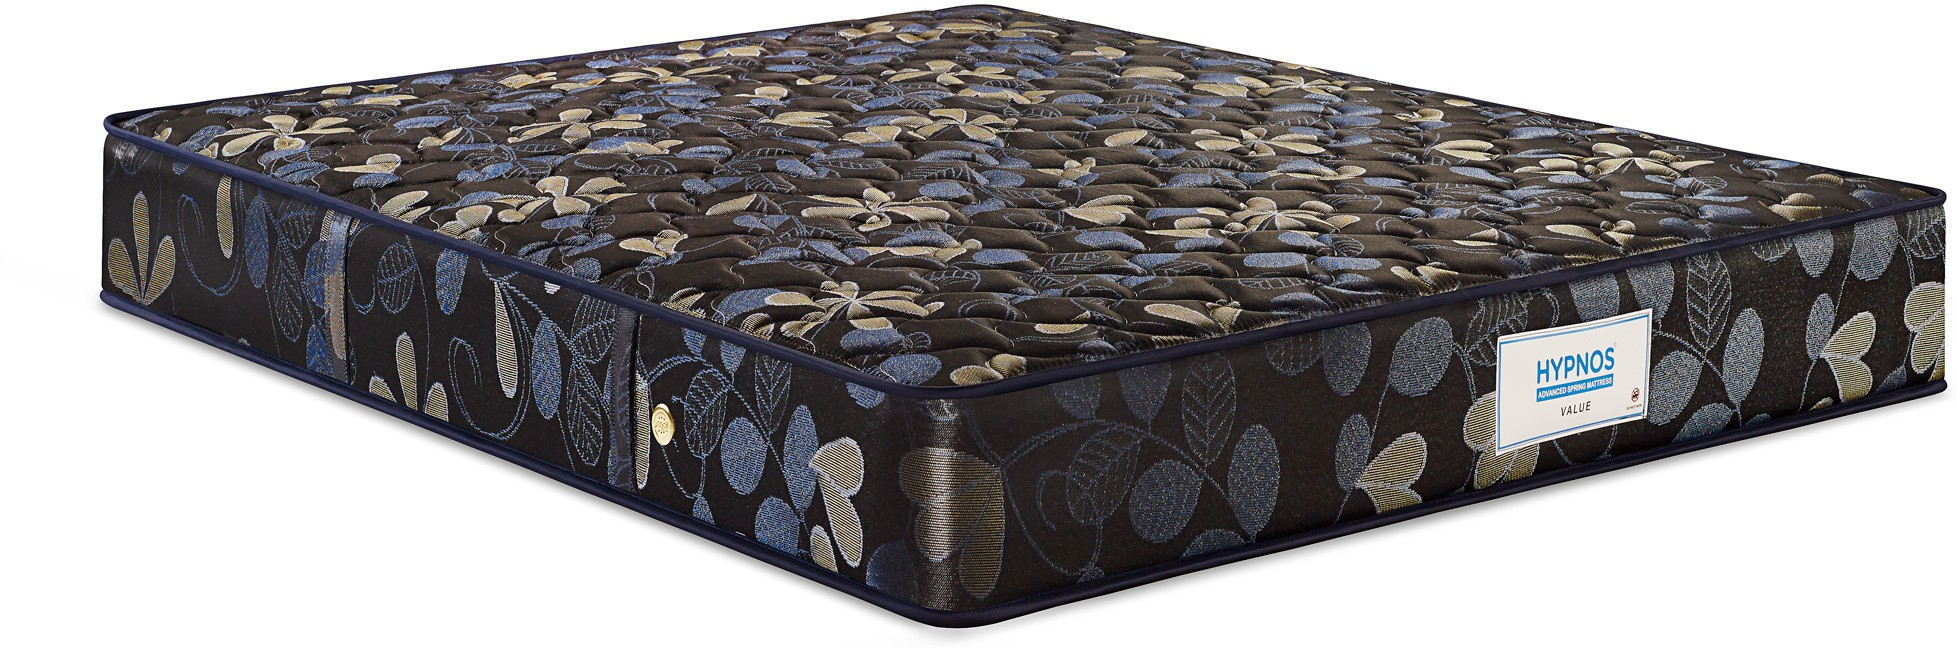 View Hypnos Bonnell Normal Top 6 inch Queen Spring Mattress(Bonnell Spring) Furniture (Hypnos)